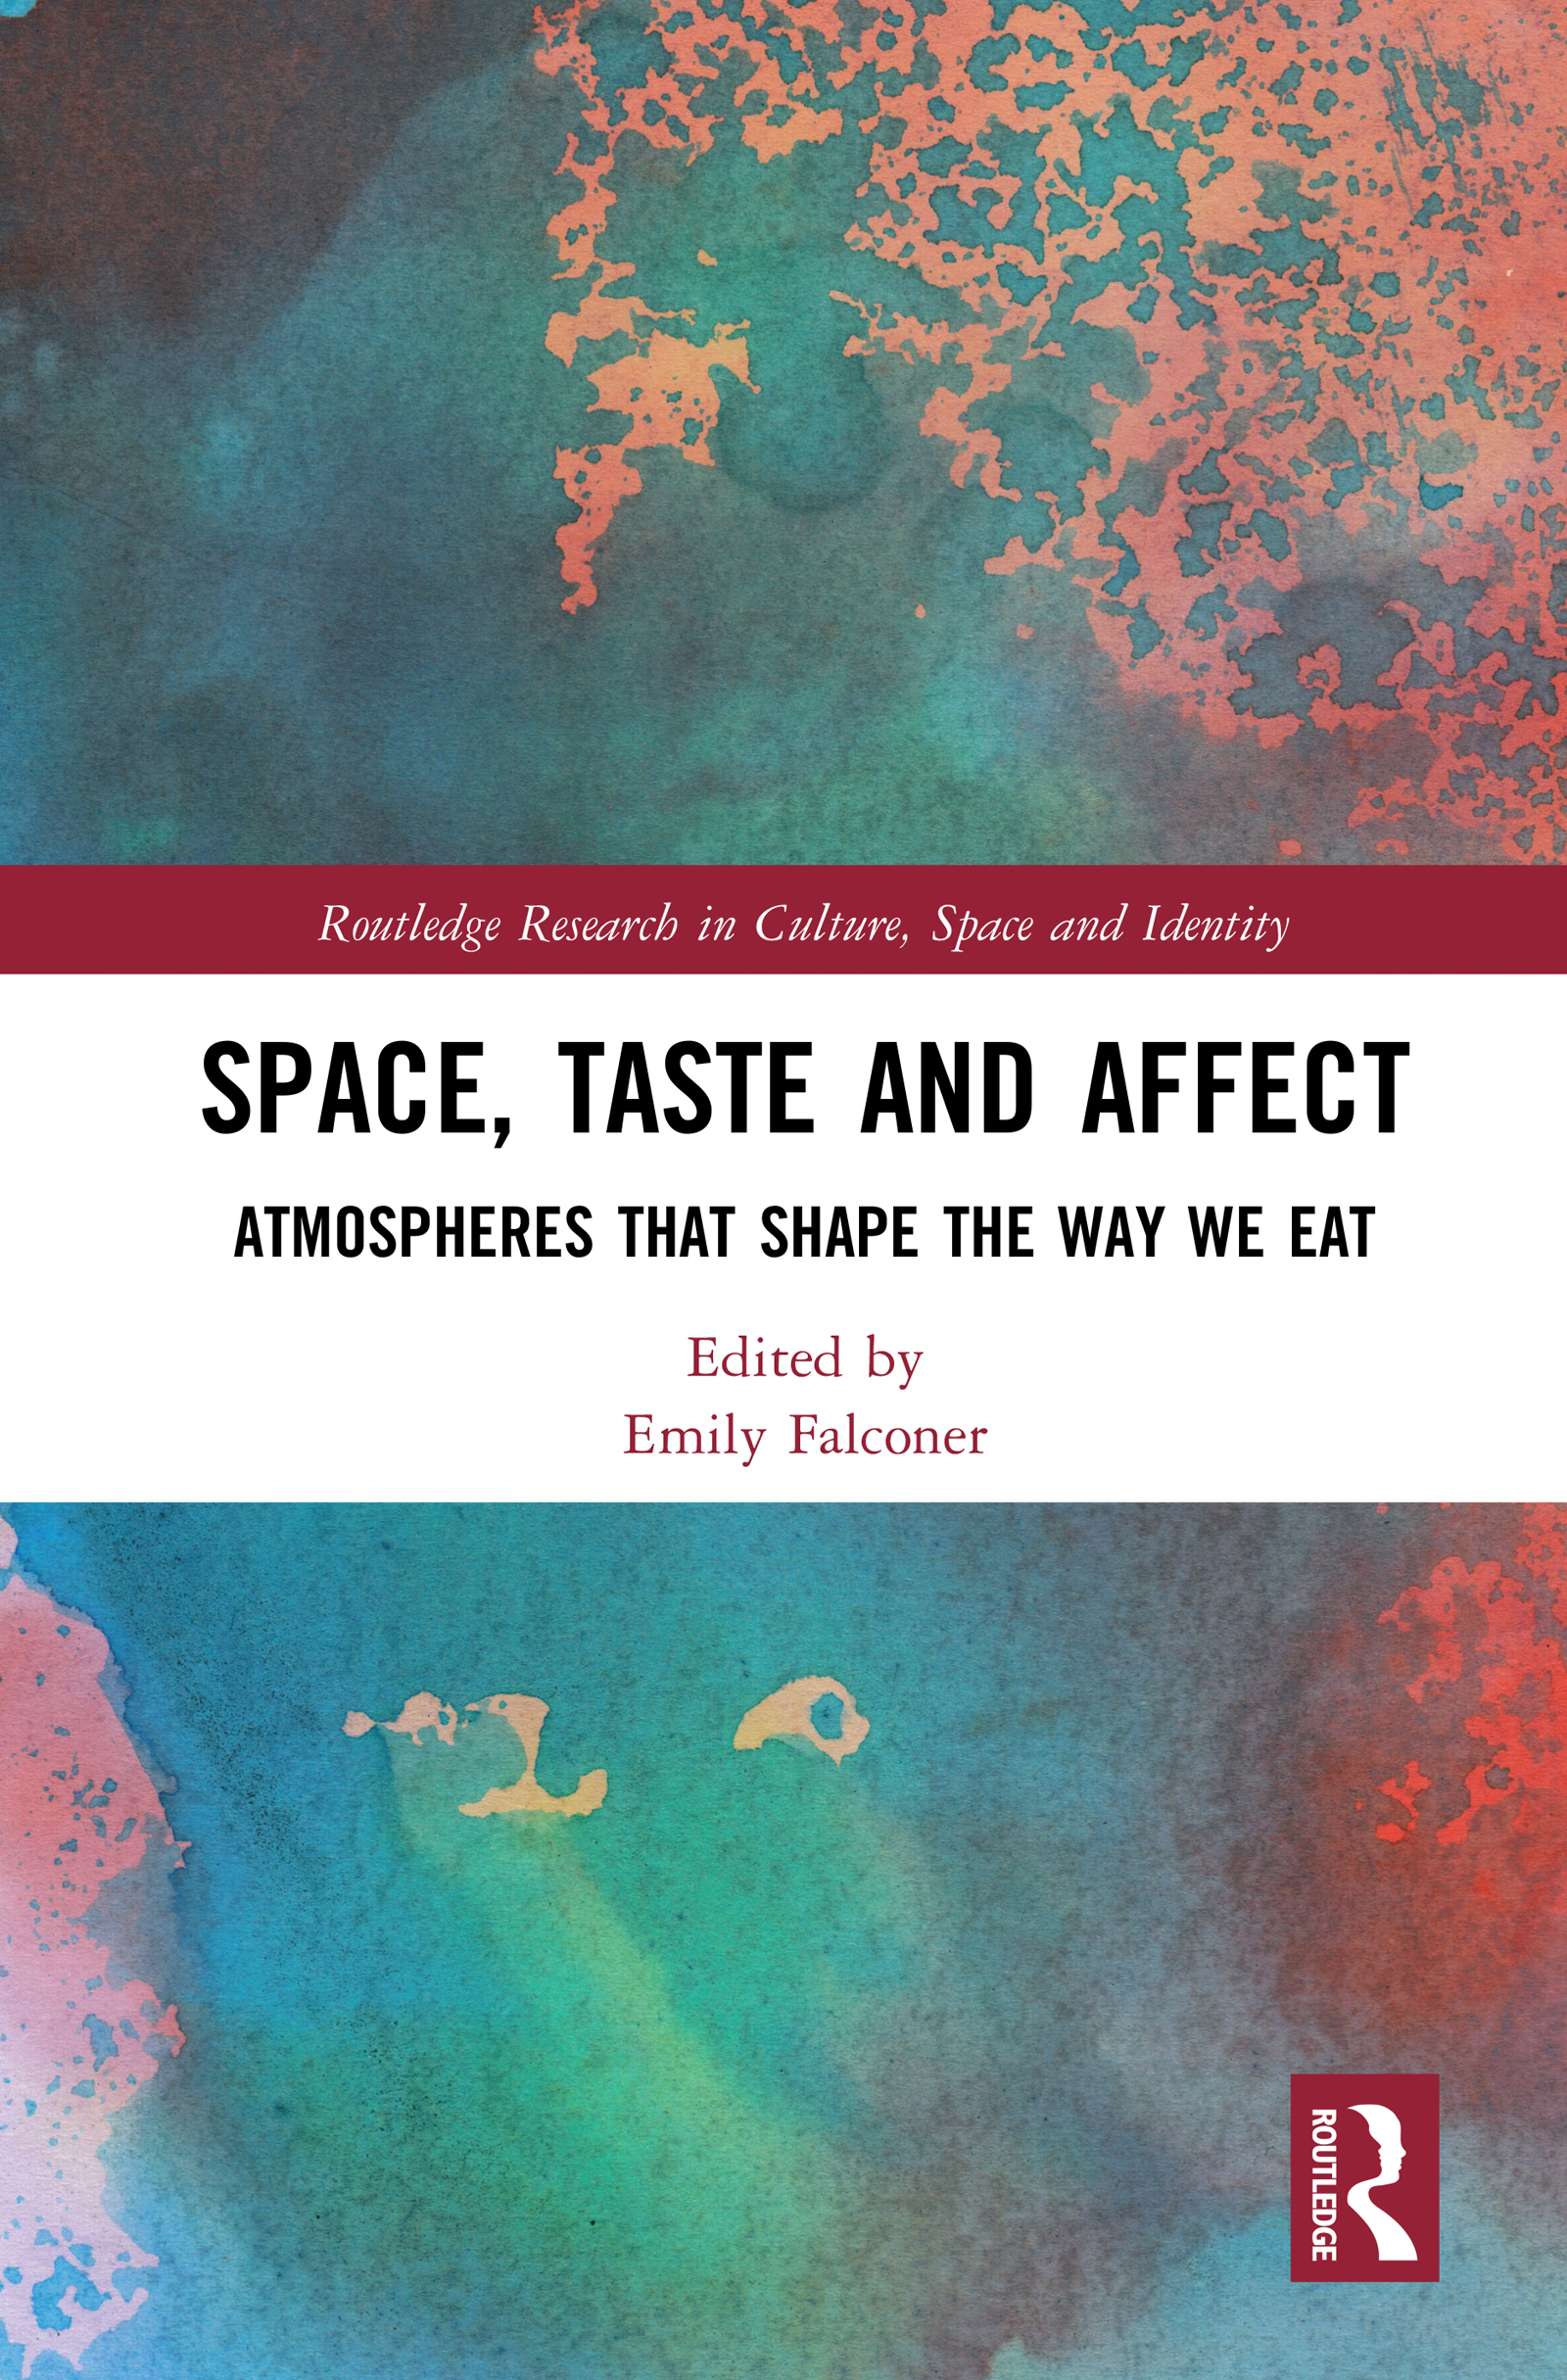 Space, Taste and Affect